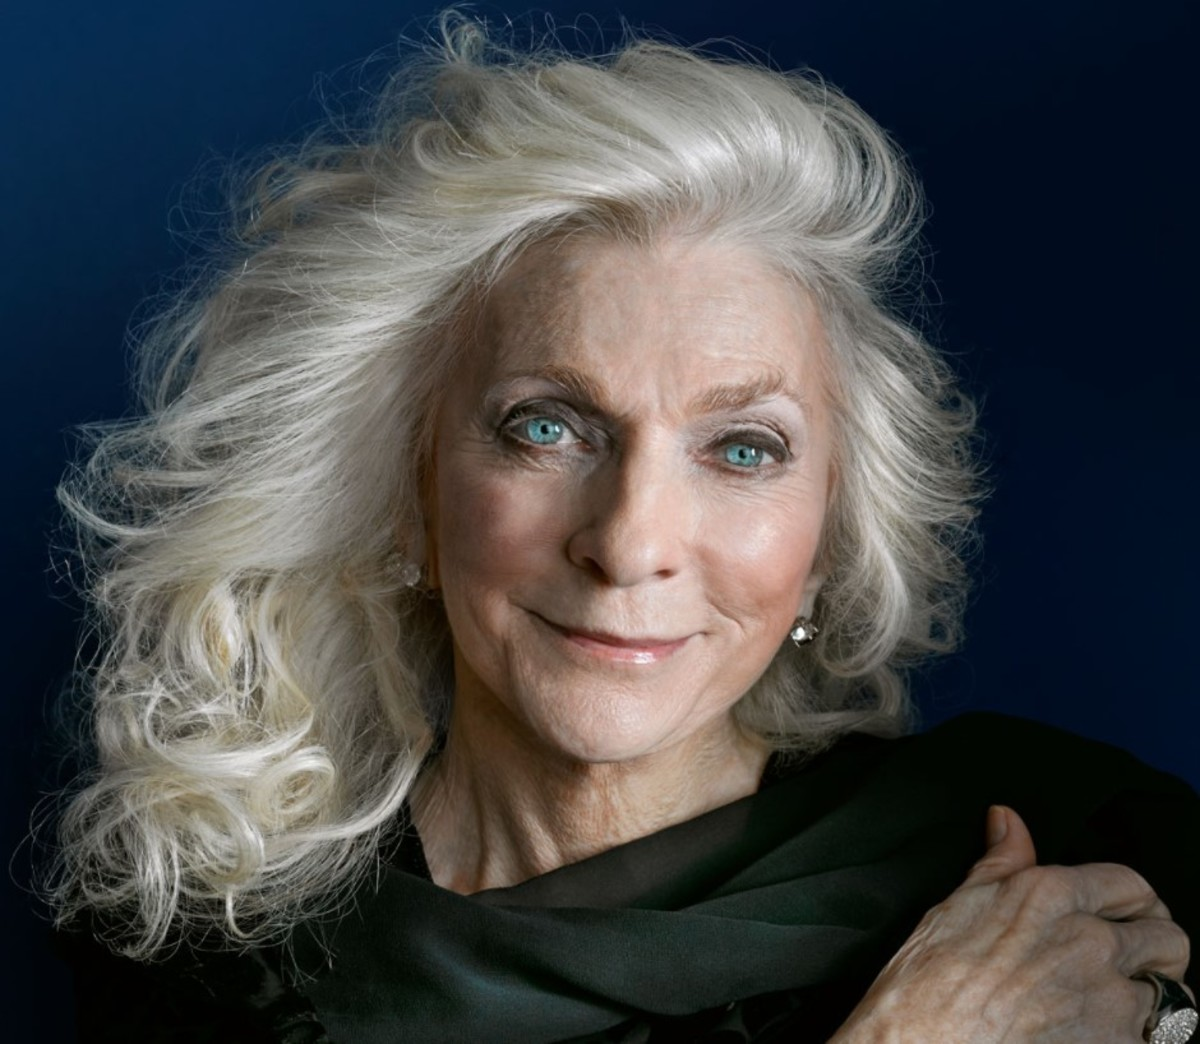 Current photo courtesy of judycollins.com